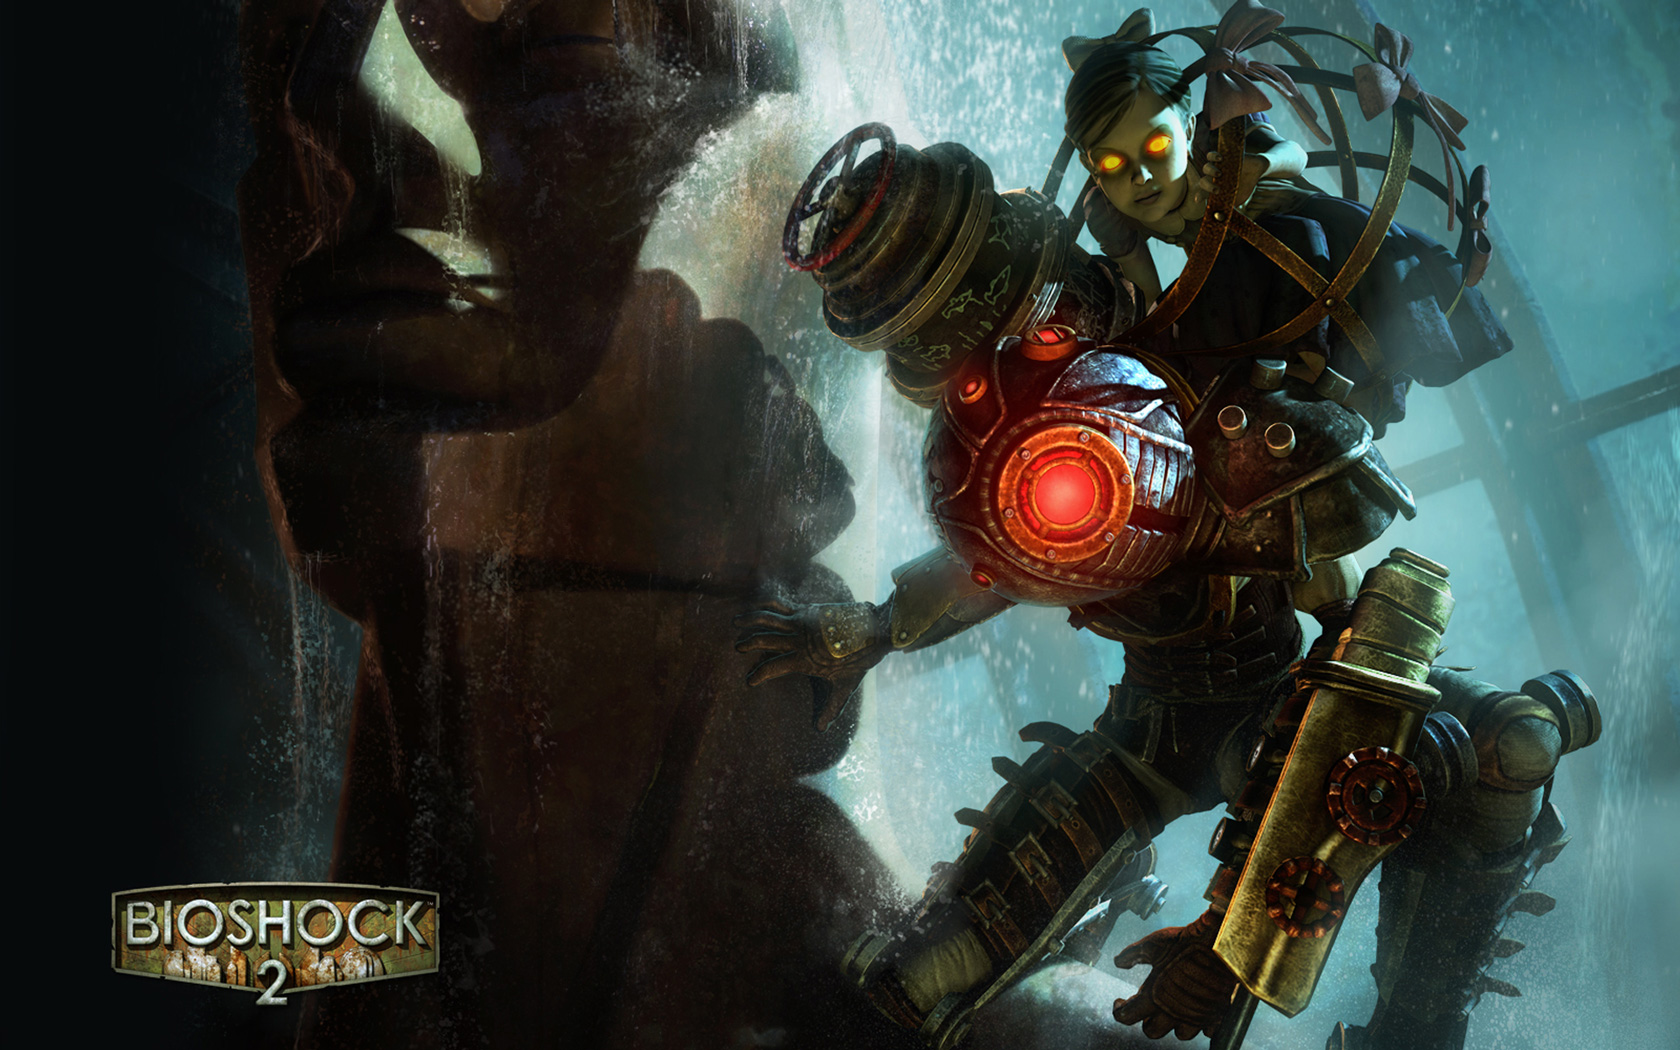 Free Bioshock 2 Wallpaper in 1680x1050